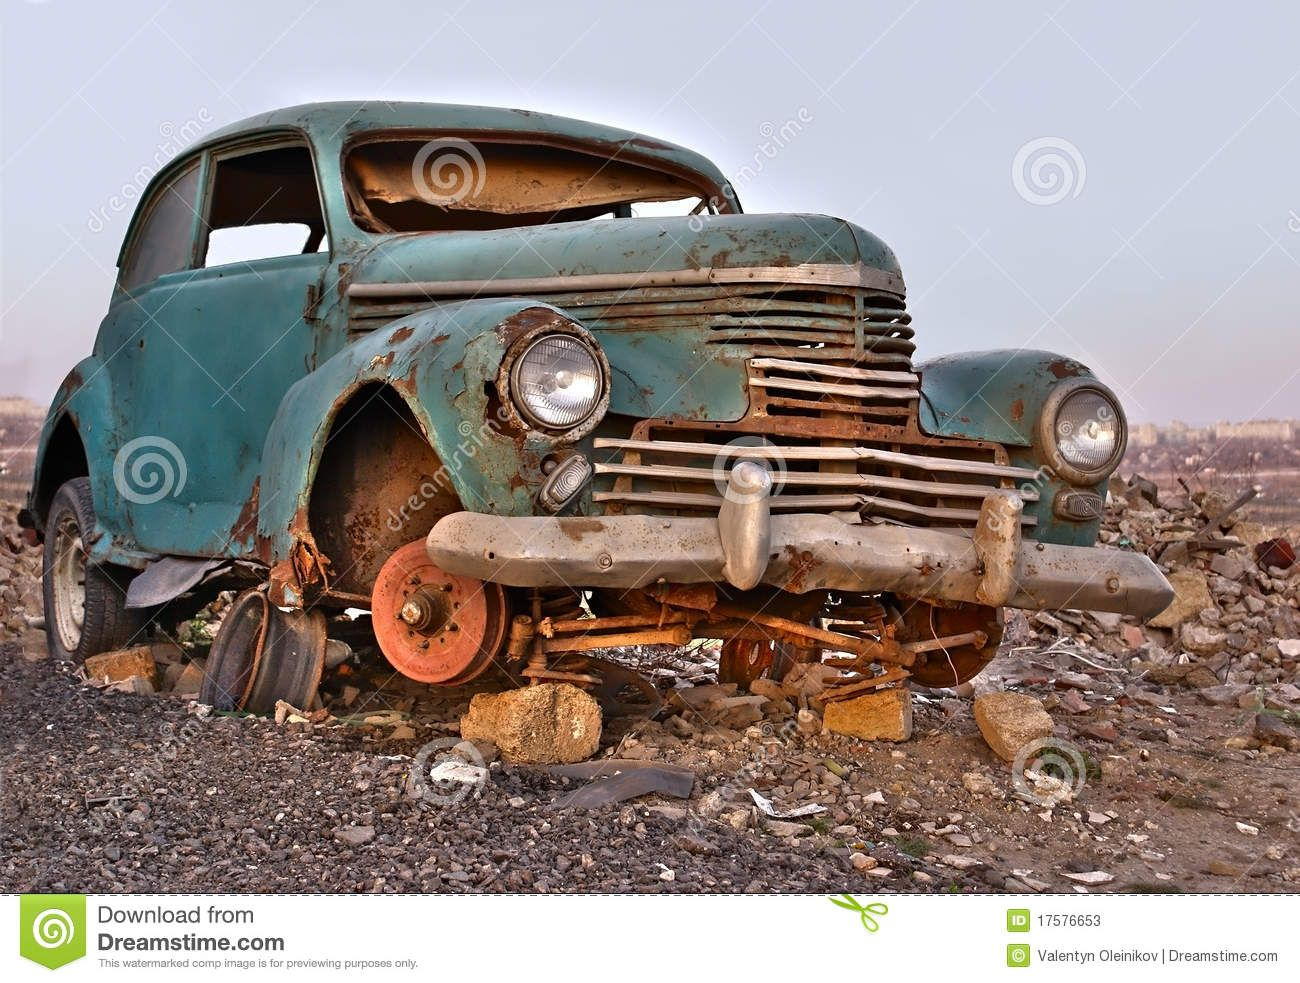 Old Broken Rusty Abandoned Car - Download From Over 43 Million High ...